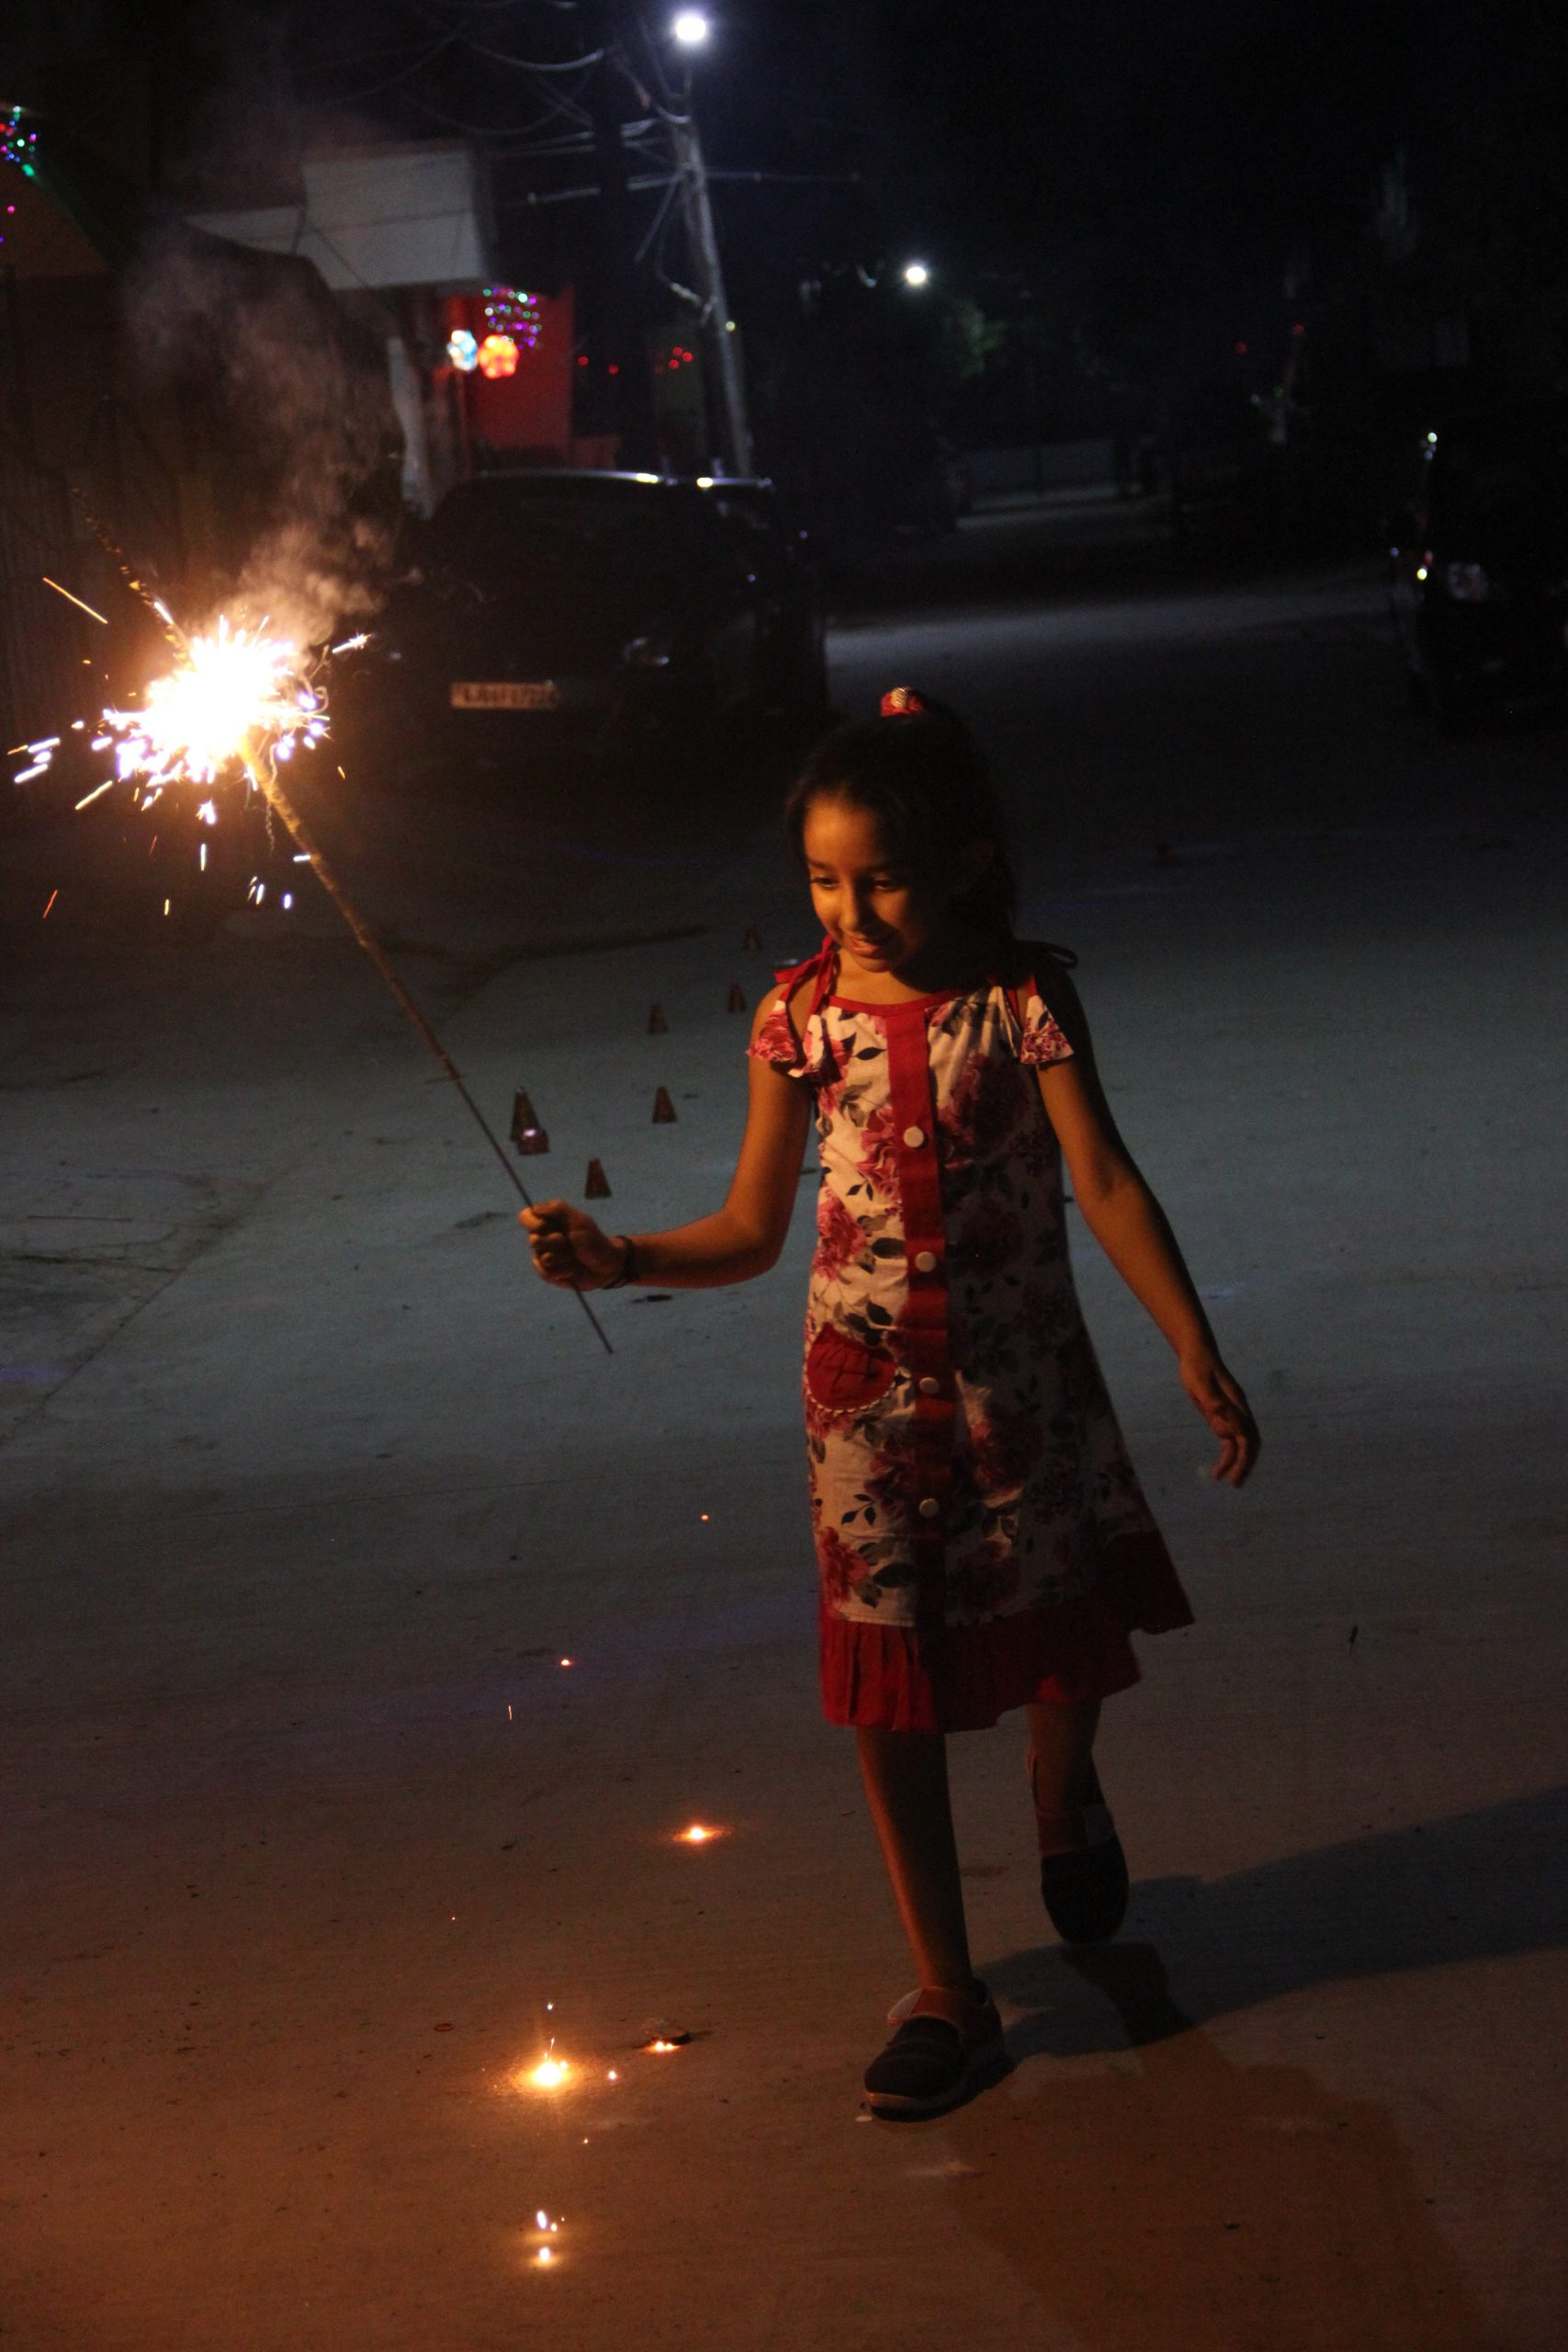 A little girl cracking sparklers